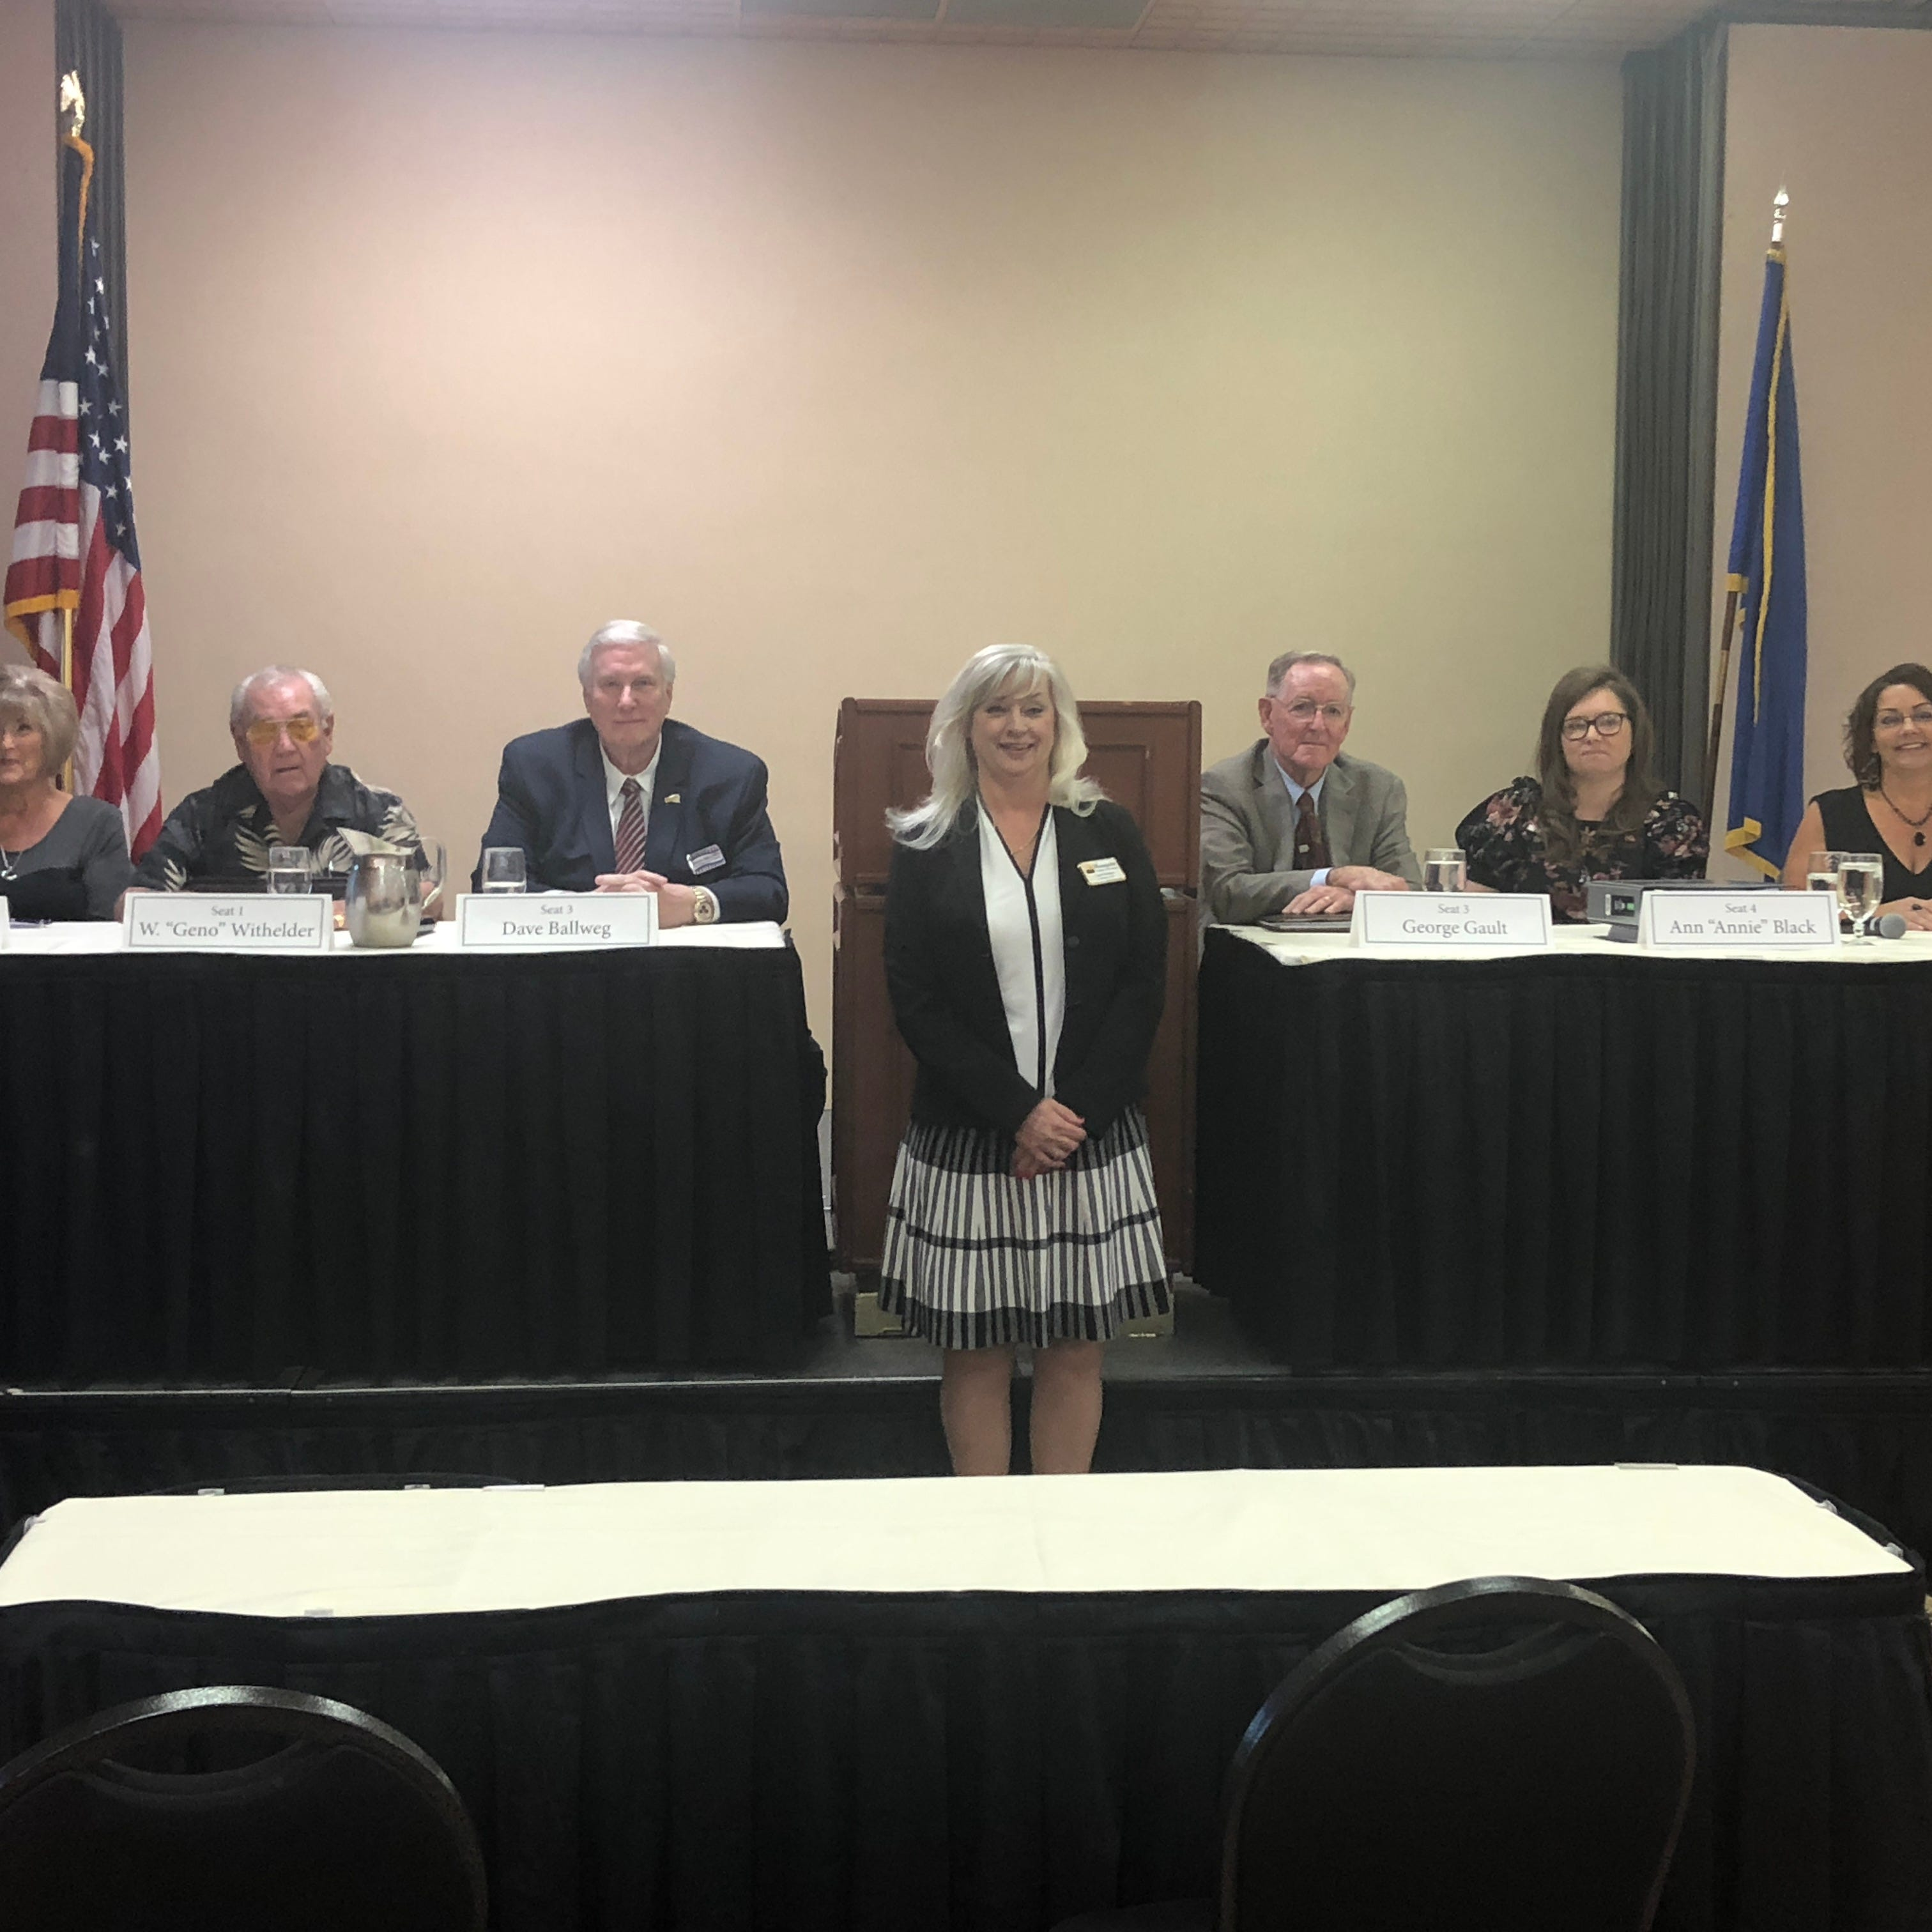 On Oct. 10, 2018, the Mesquite Chamber of Commerce, led by CEO Carol Kolson (center), hosted a forum for the six city council candidates (from left to right): Sandra Ramaker, Geno Withelder, David Ballweg, George Gault, Annie Black and Karen Fielding.